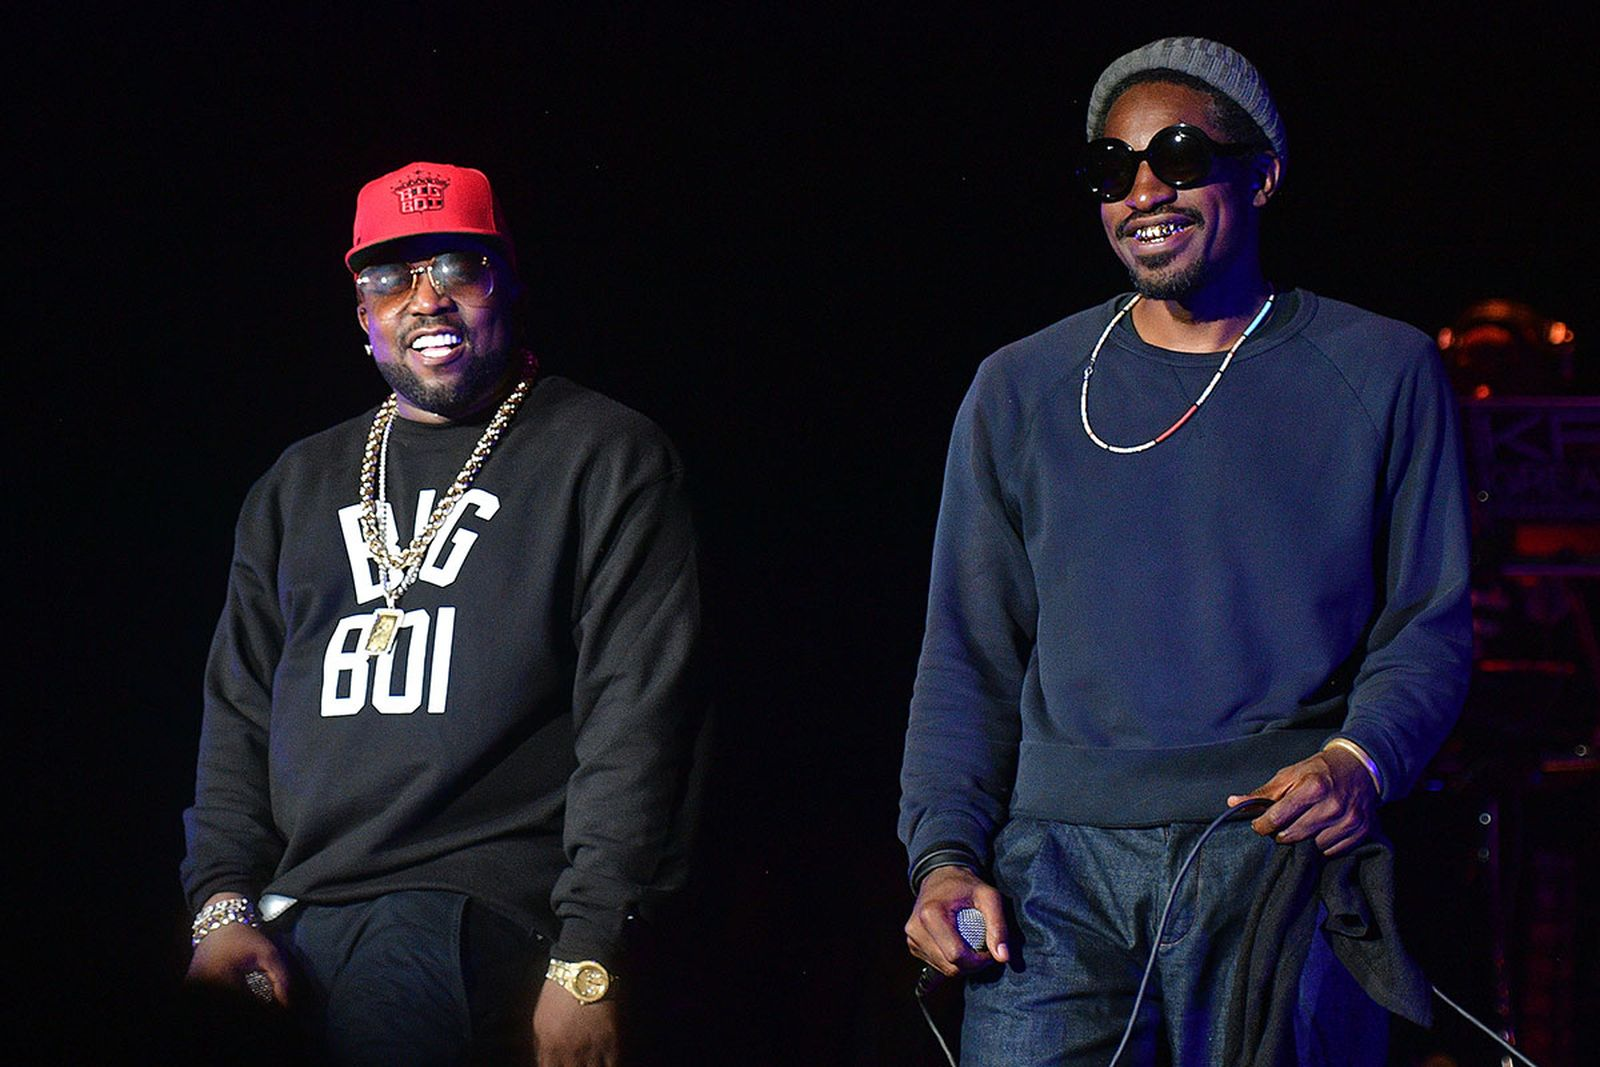 outkast 25 year anniversary andre 3000 big boi